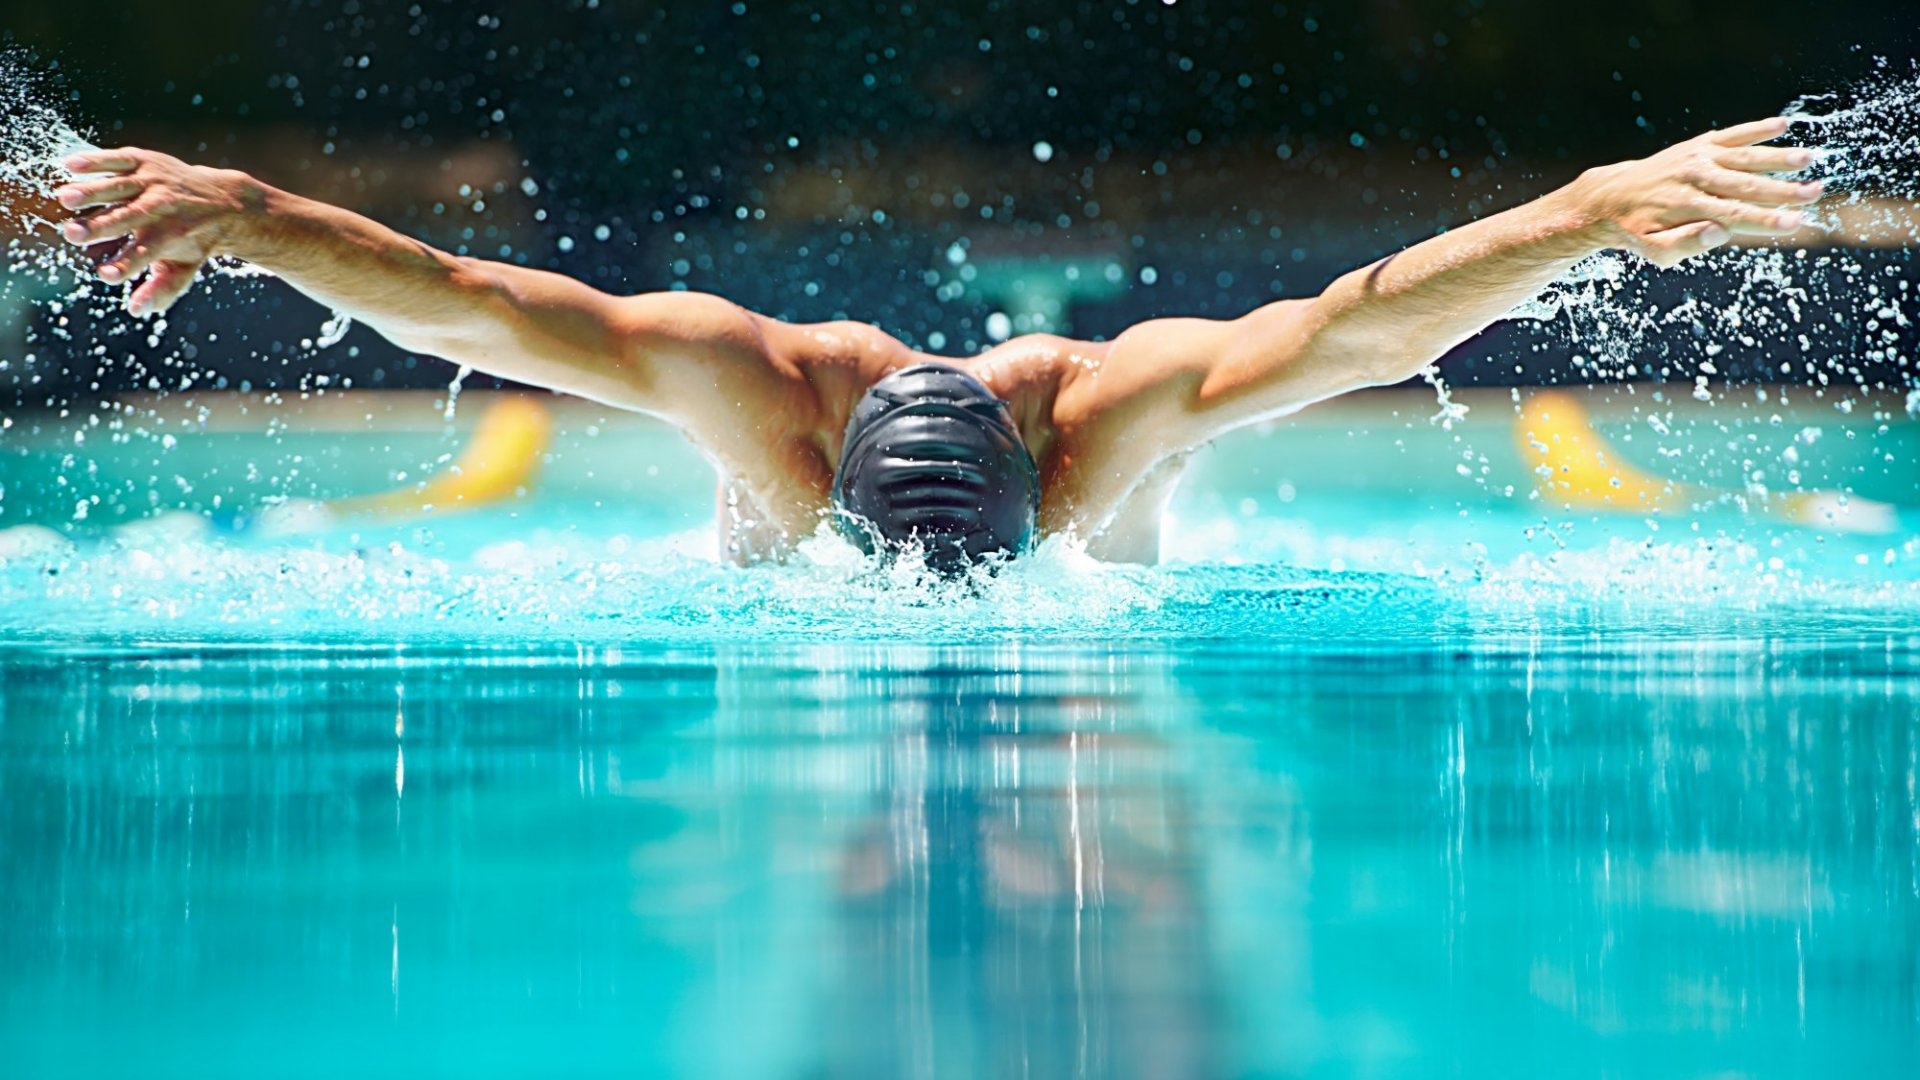 3 Mental Toughness Traits That Separate Olympic Swimmers From the Rest of Us